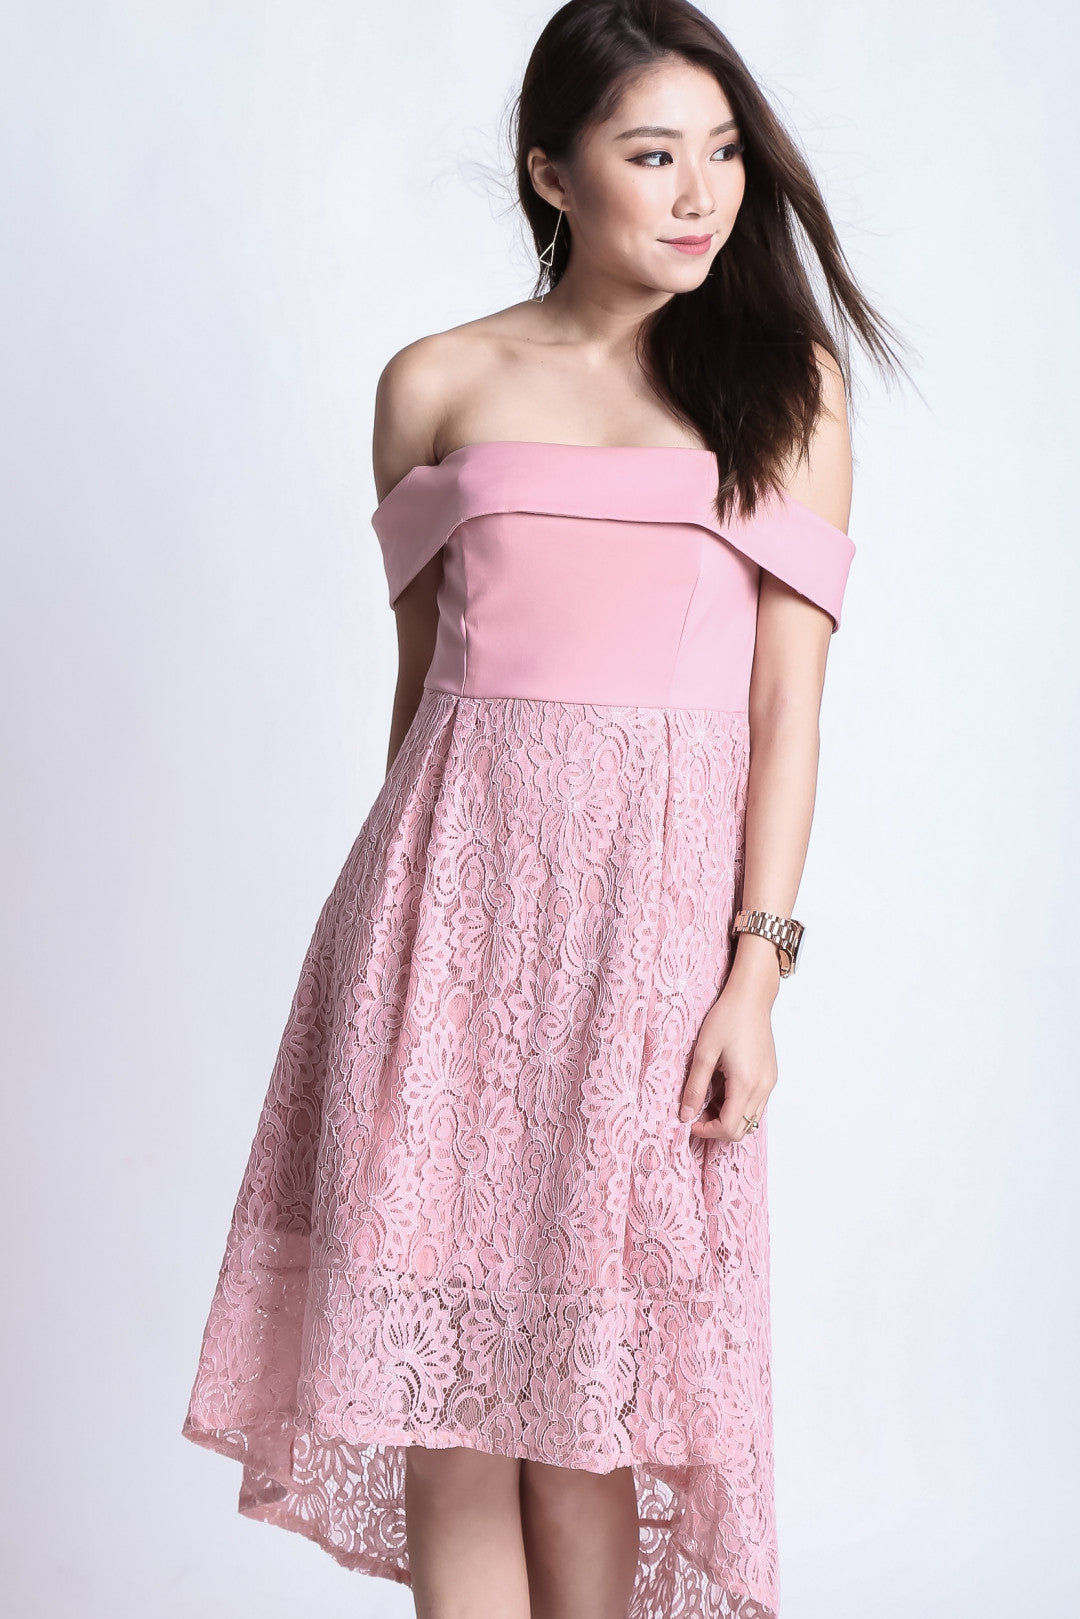 *TOPAZ* (PREMIUM) ALYSSA LACE DRESS IN PINK - TOPAZETTE